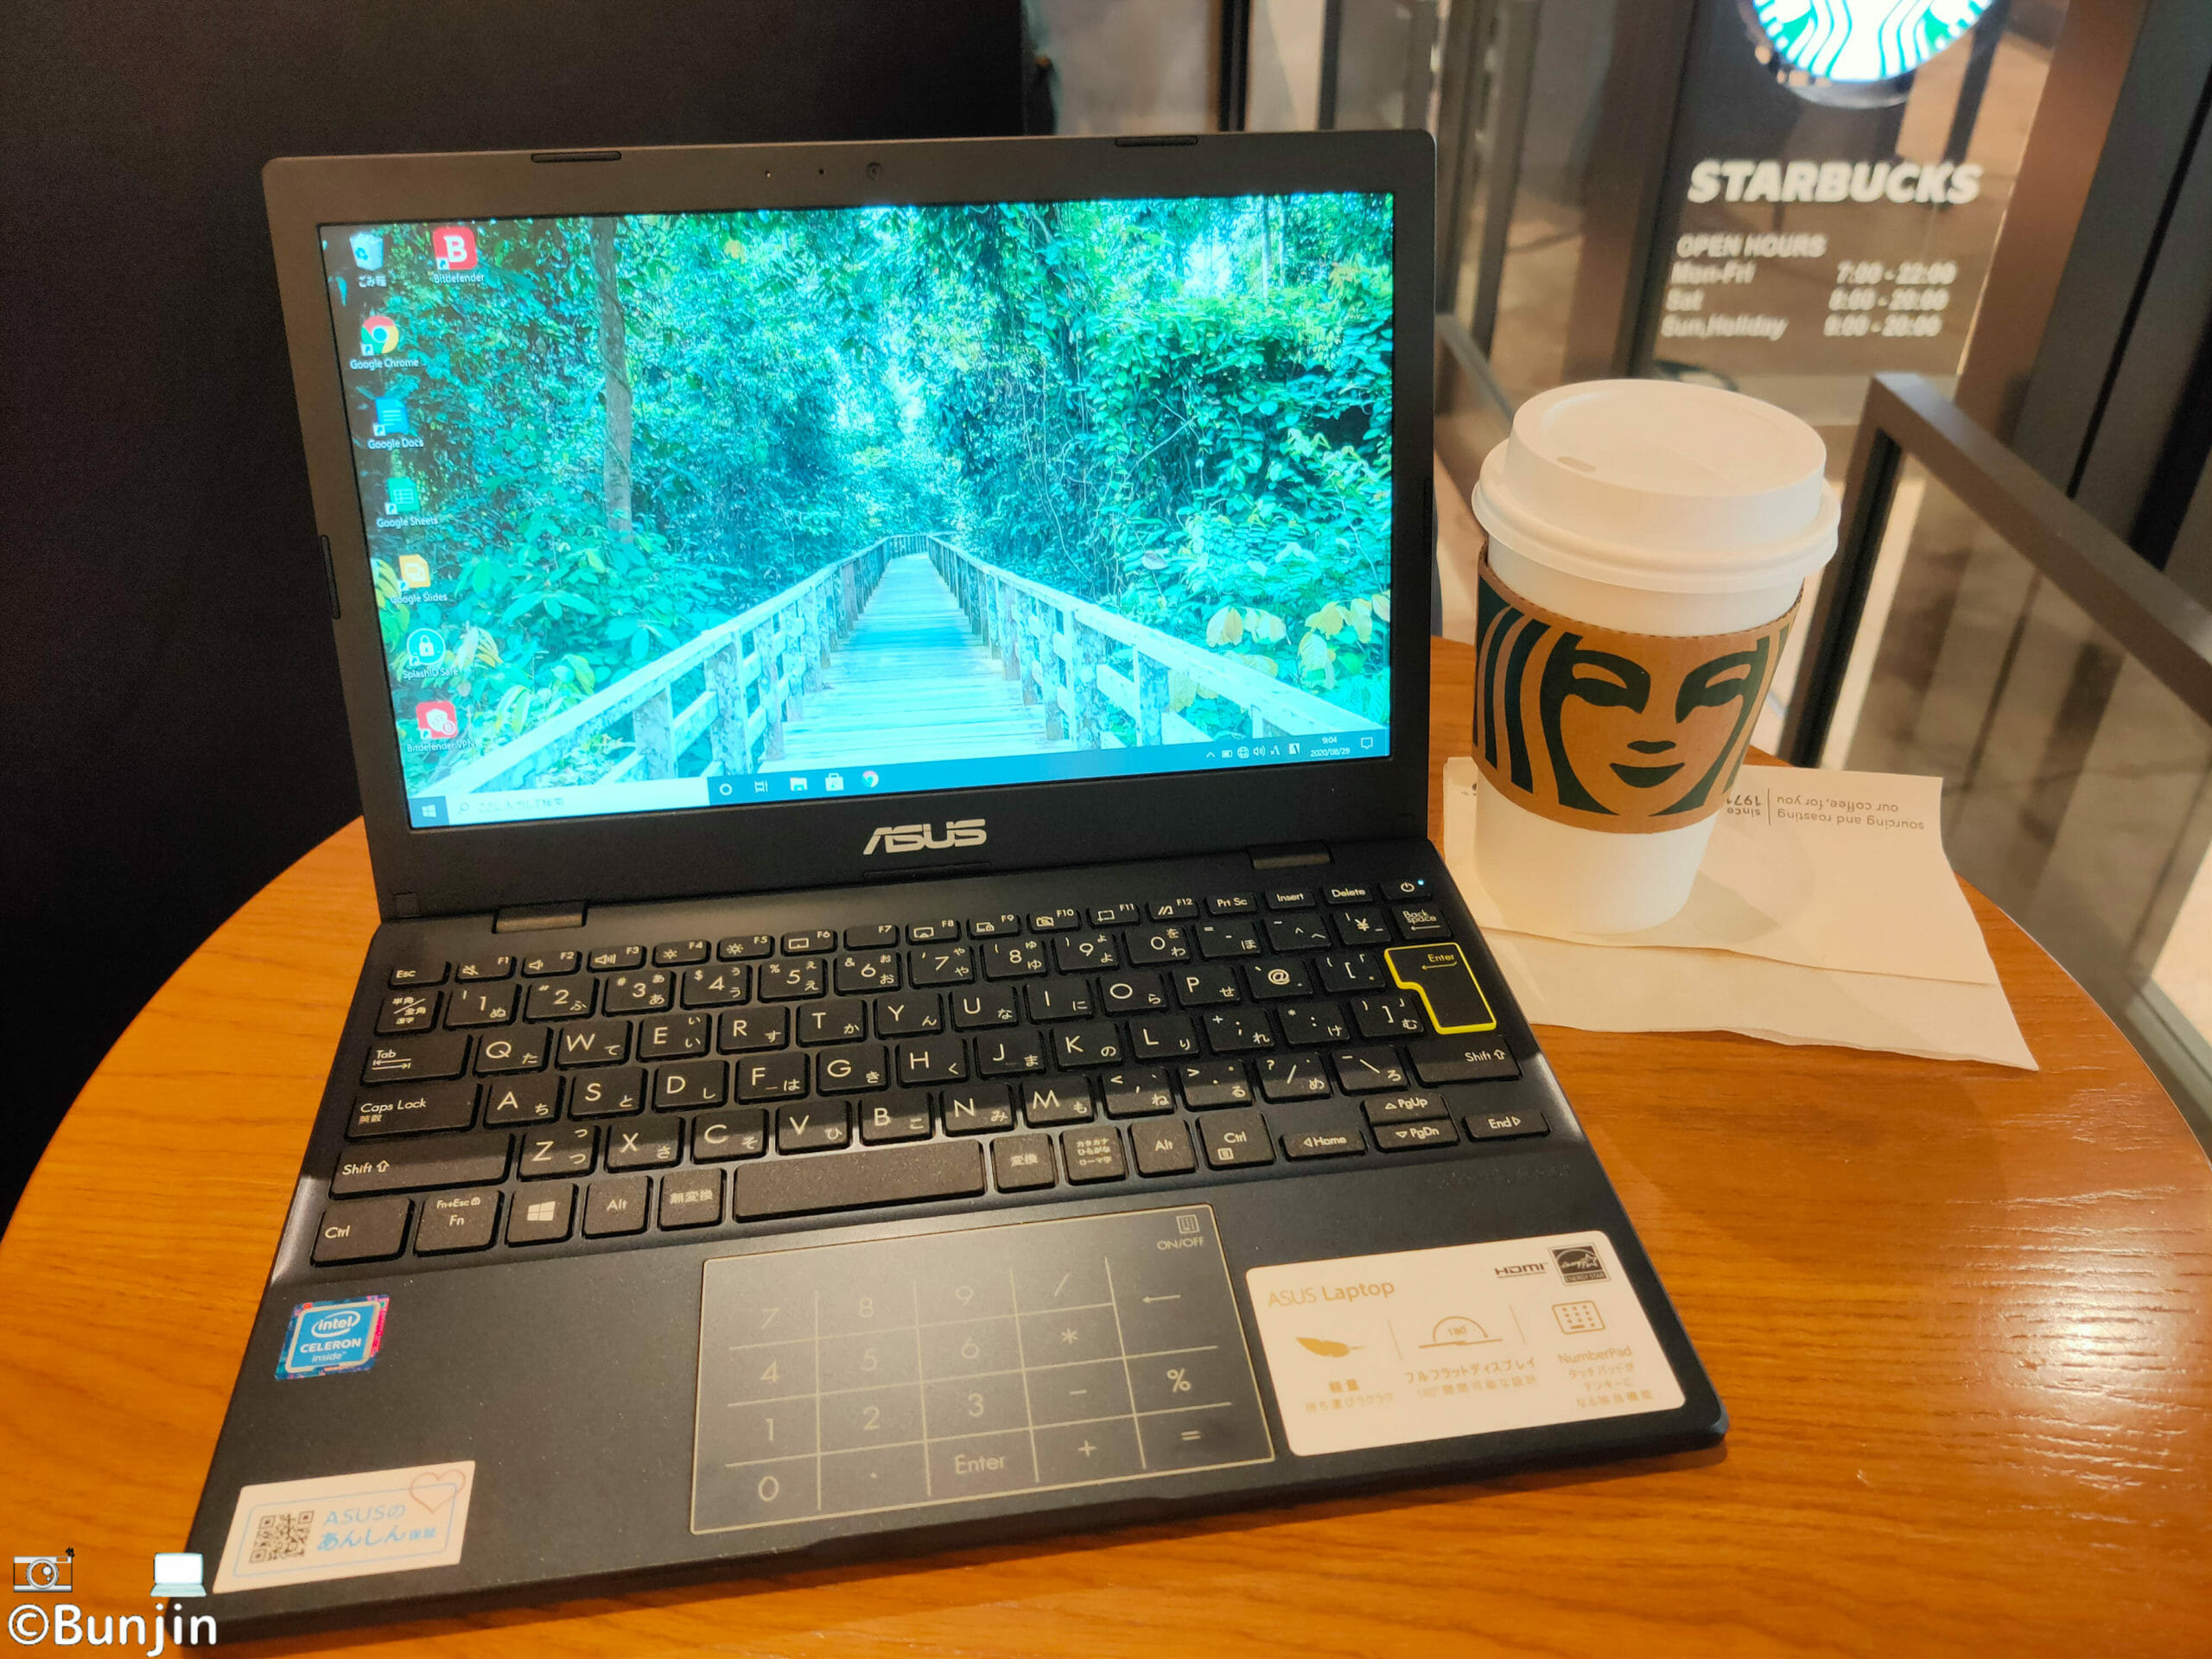 ASUS E210MA at Starbucks